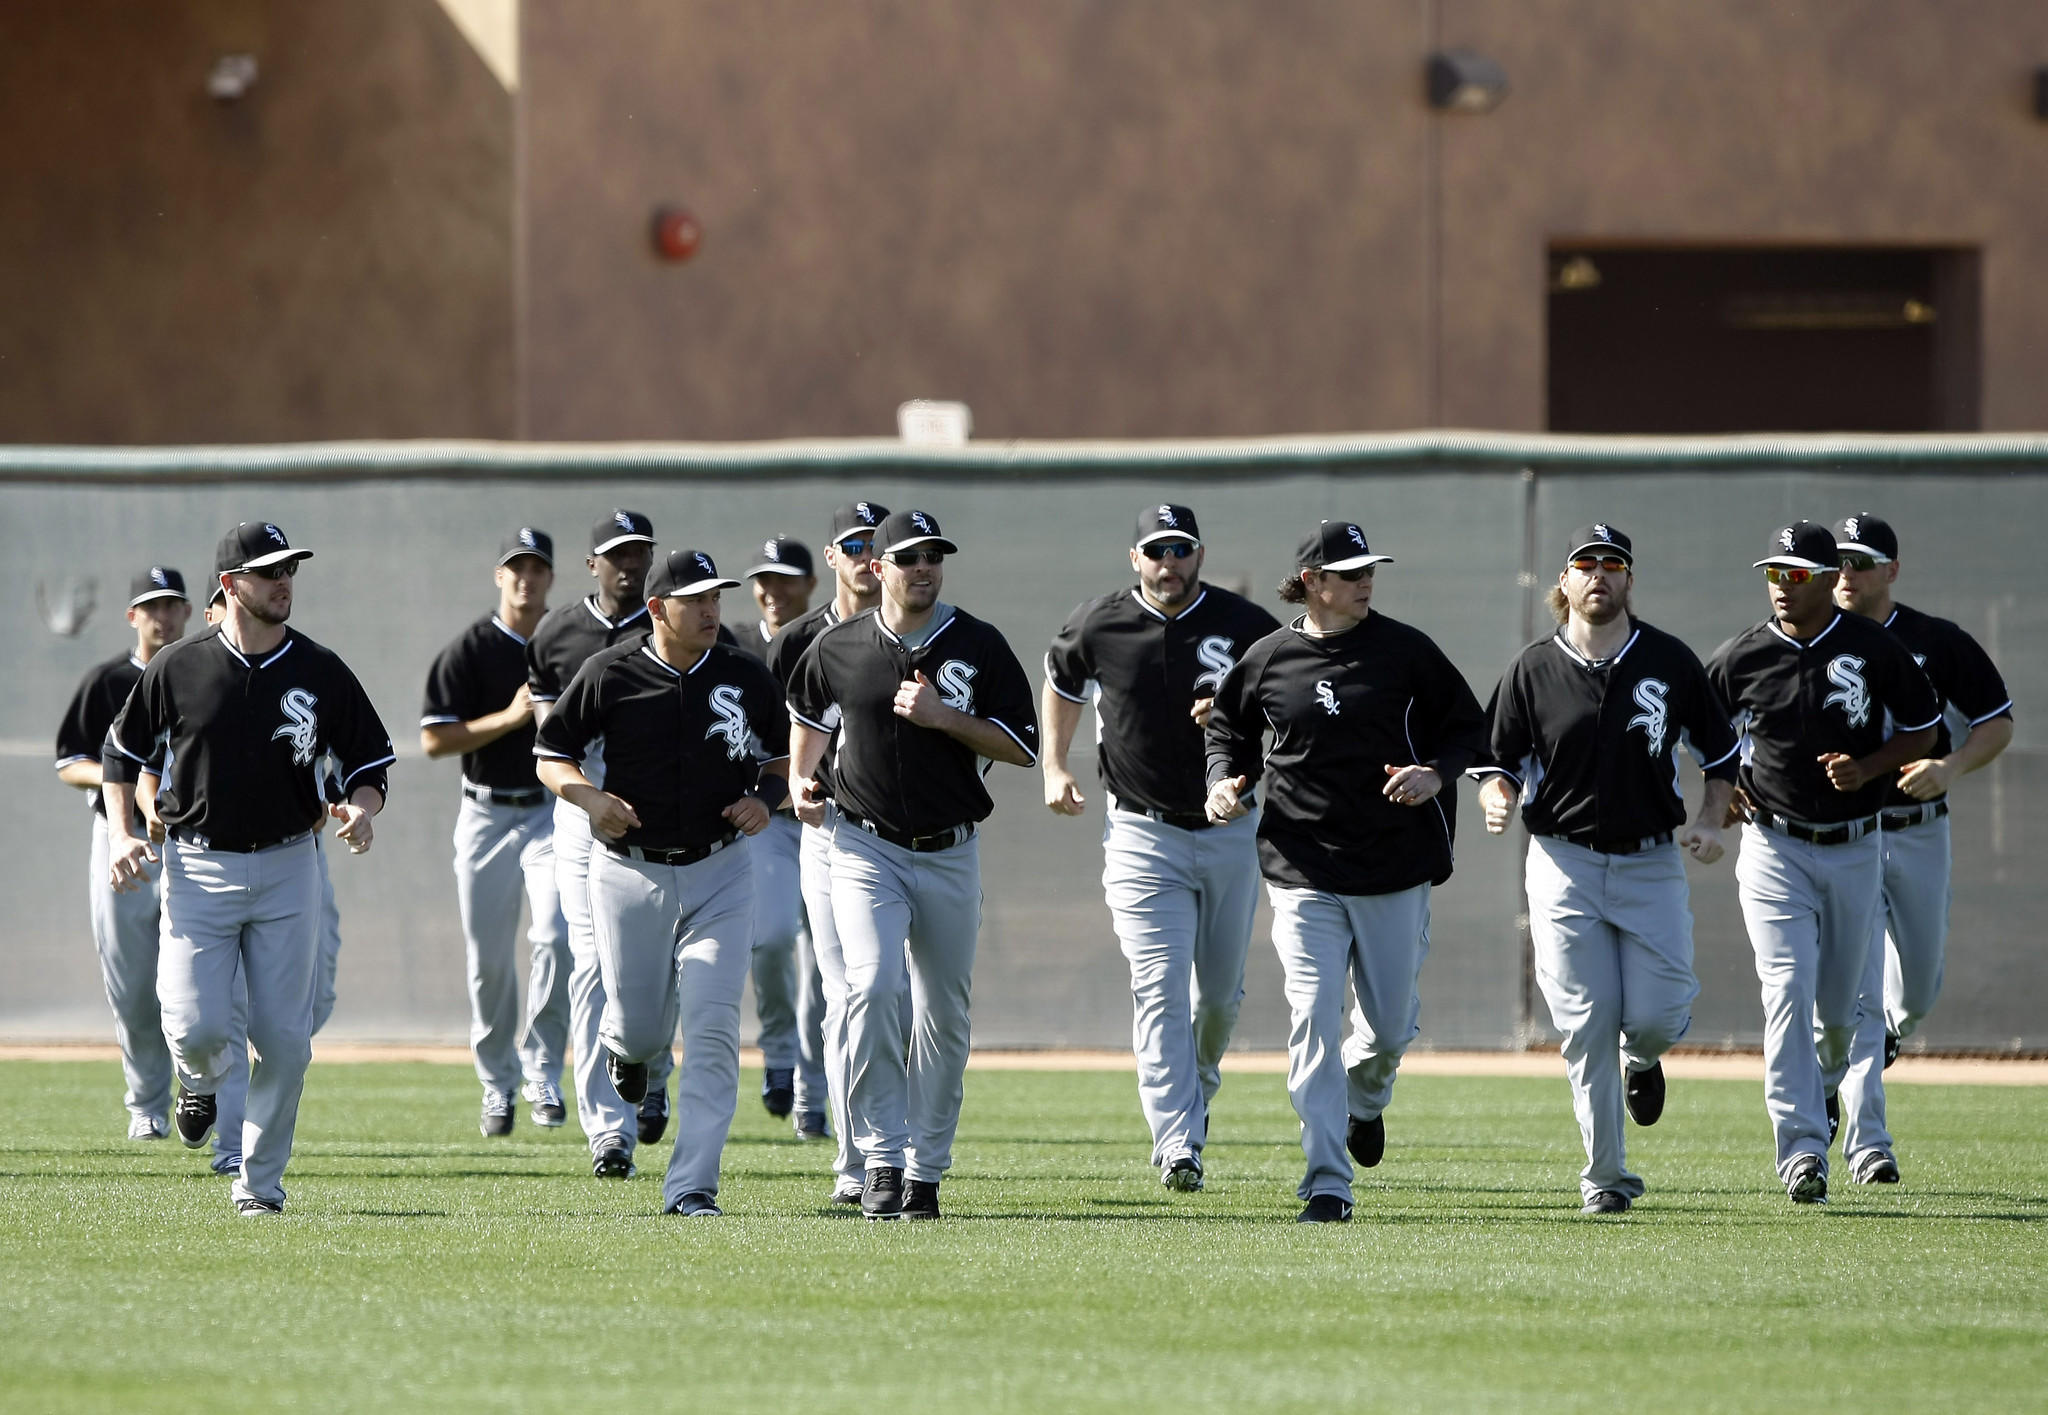 Chicago White Sox players run on the field during spring training at Camelback Ranch.